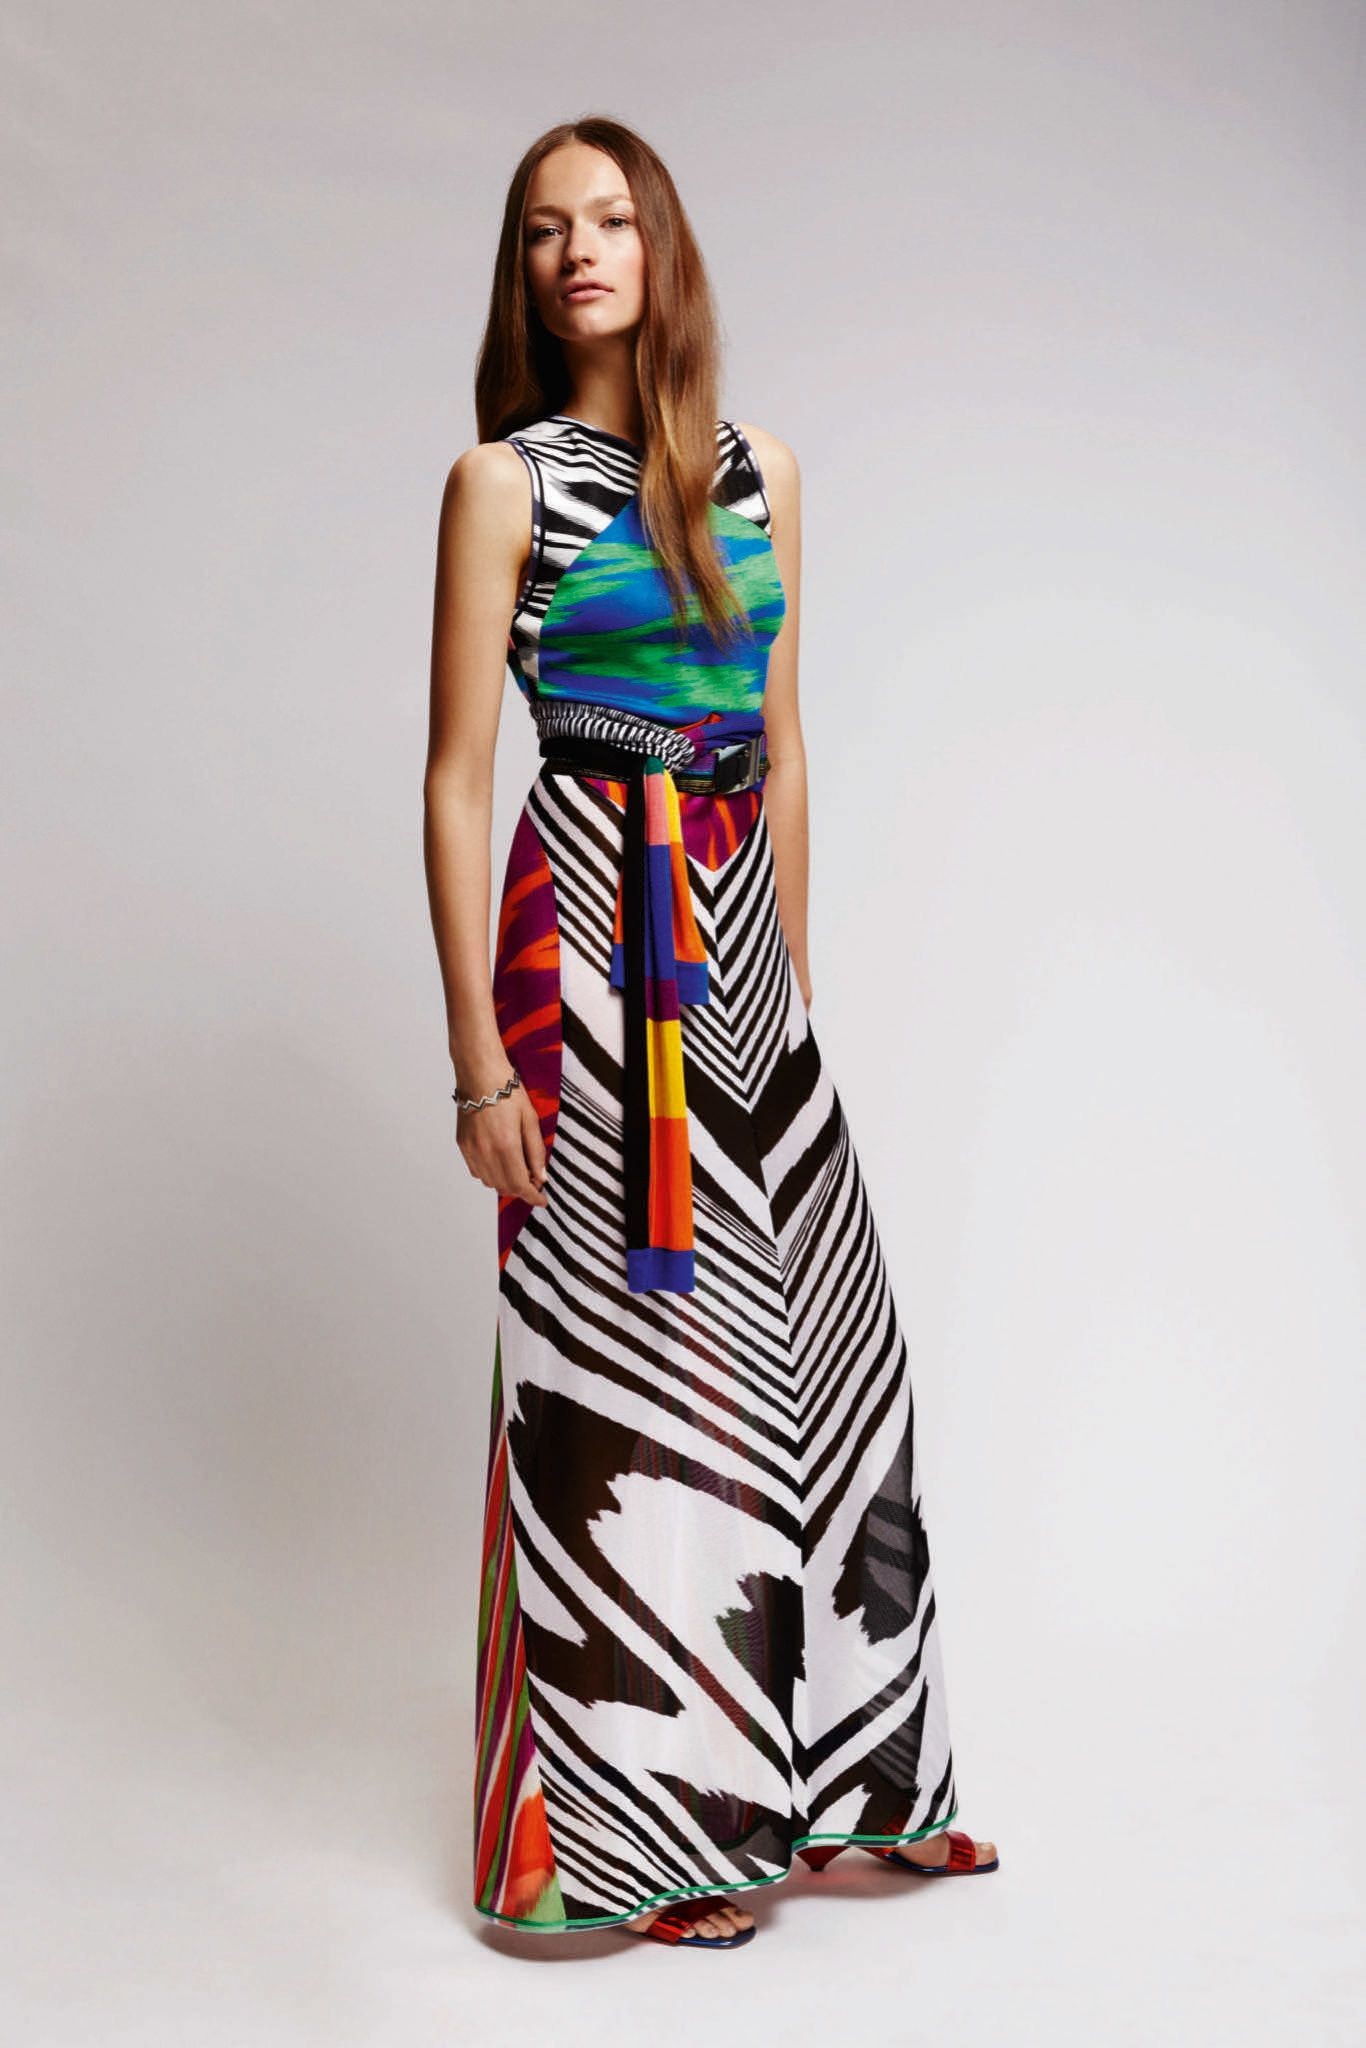 finest selection 93118 b62ef Missoni Resort 2016 Fashion Show | vestiti maglieria ...